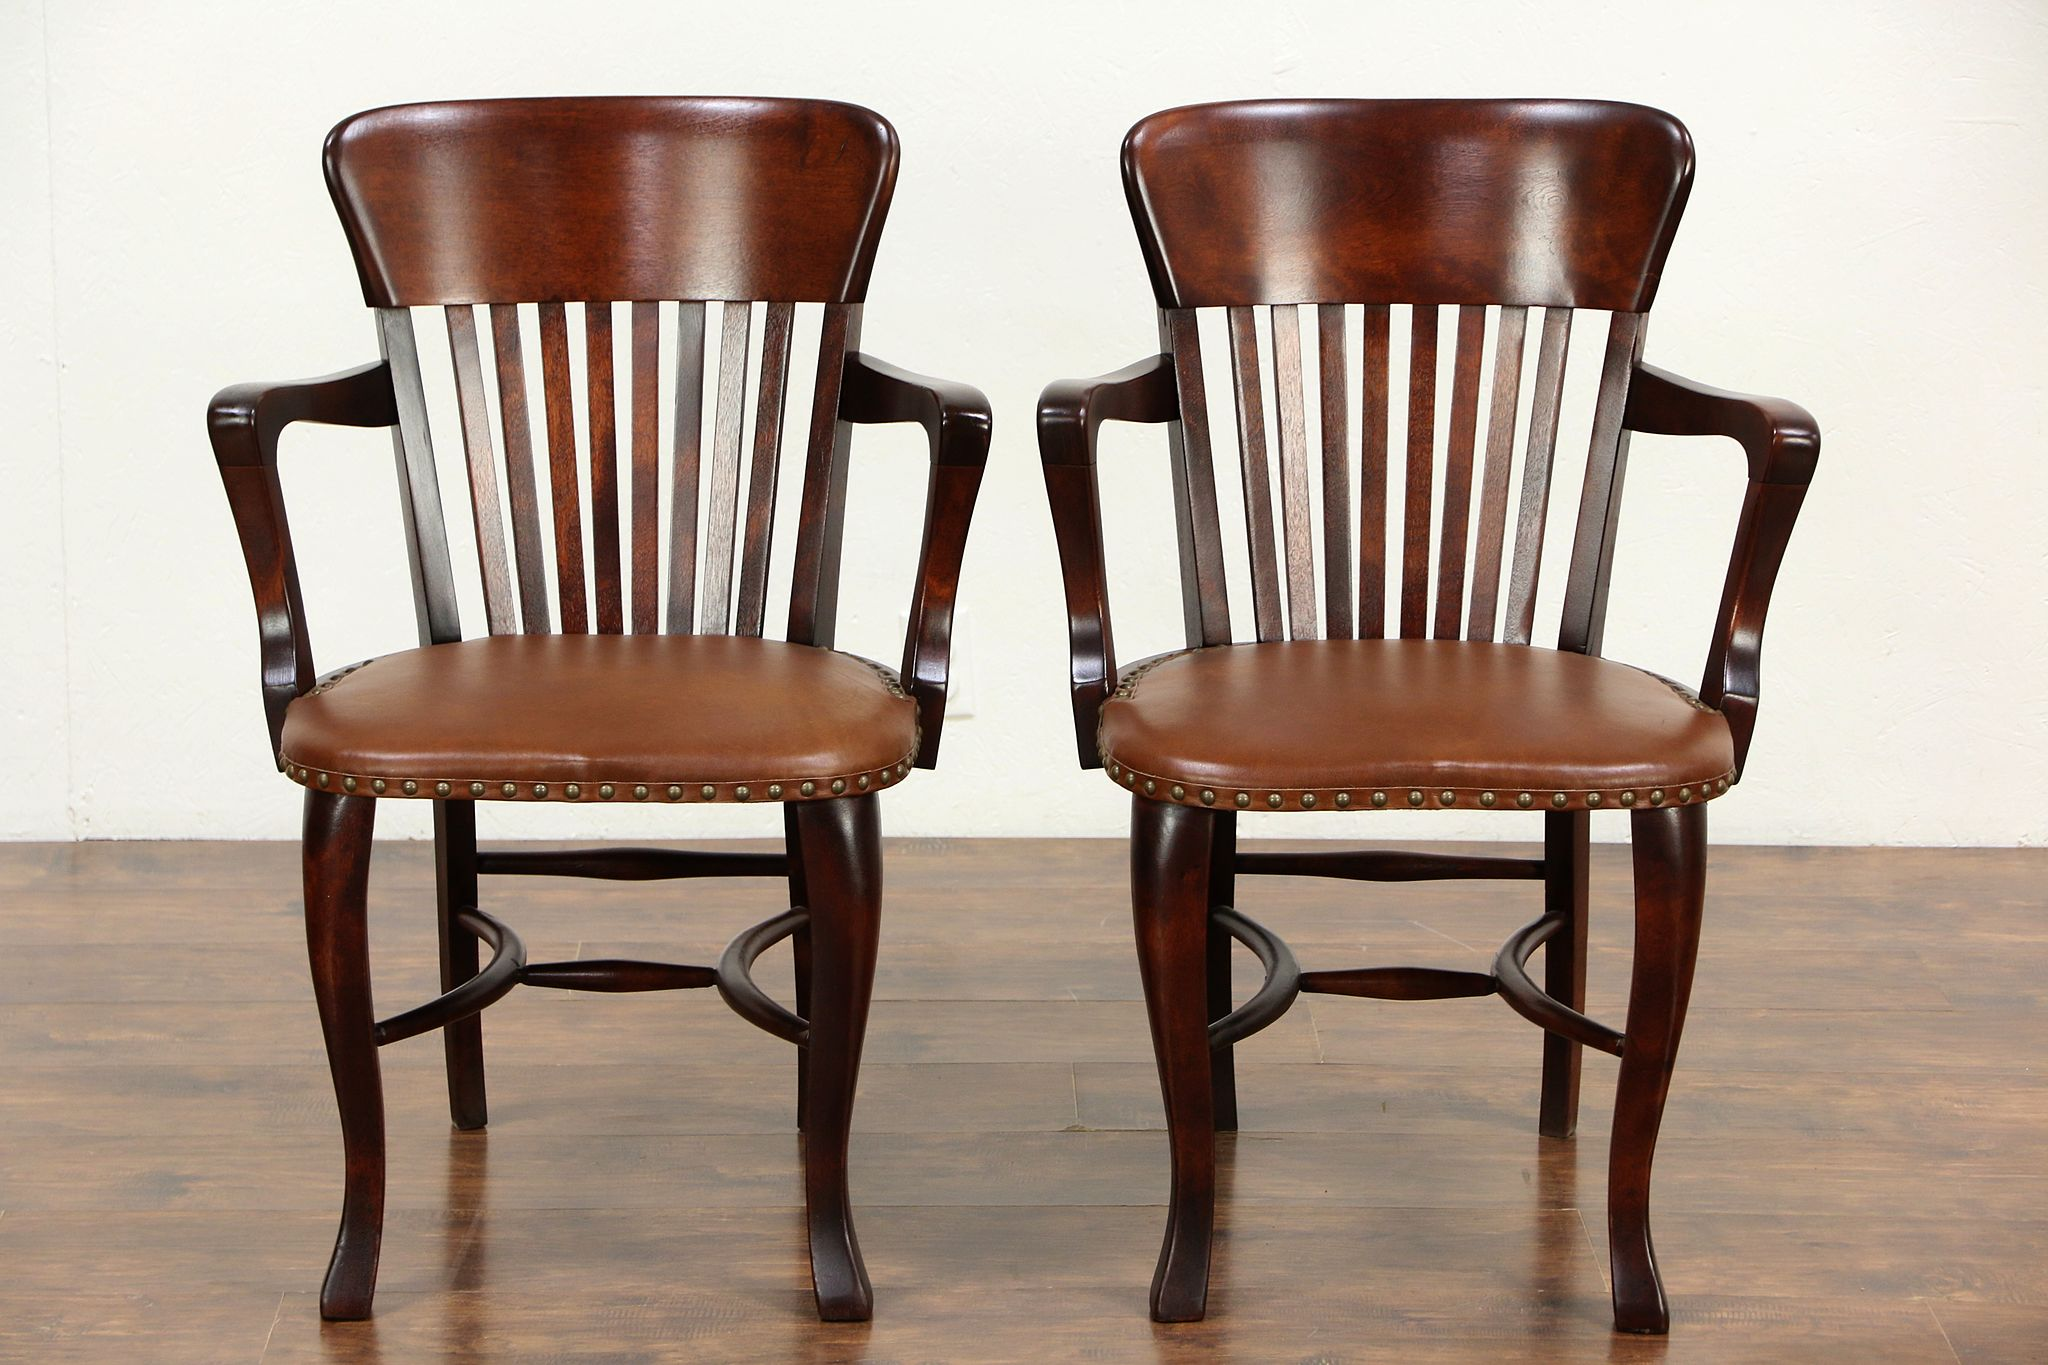 uniacke productdisplay chair rose by library